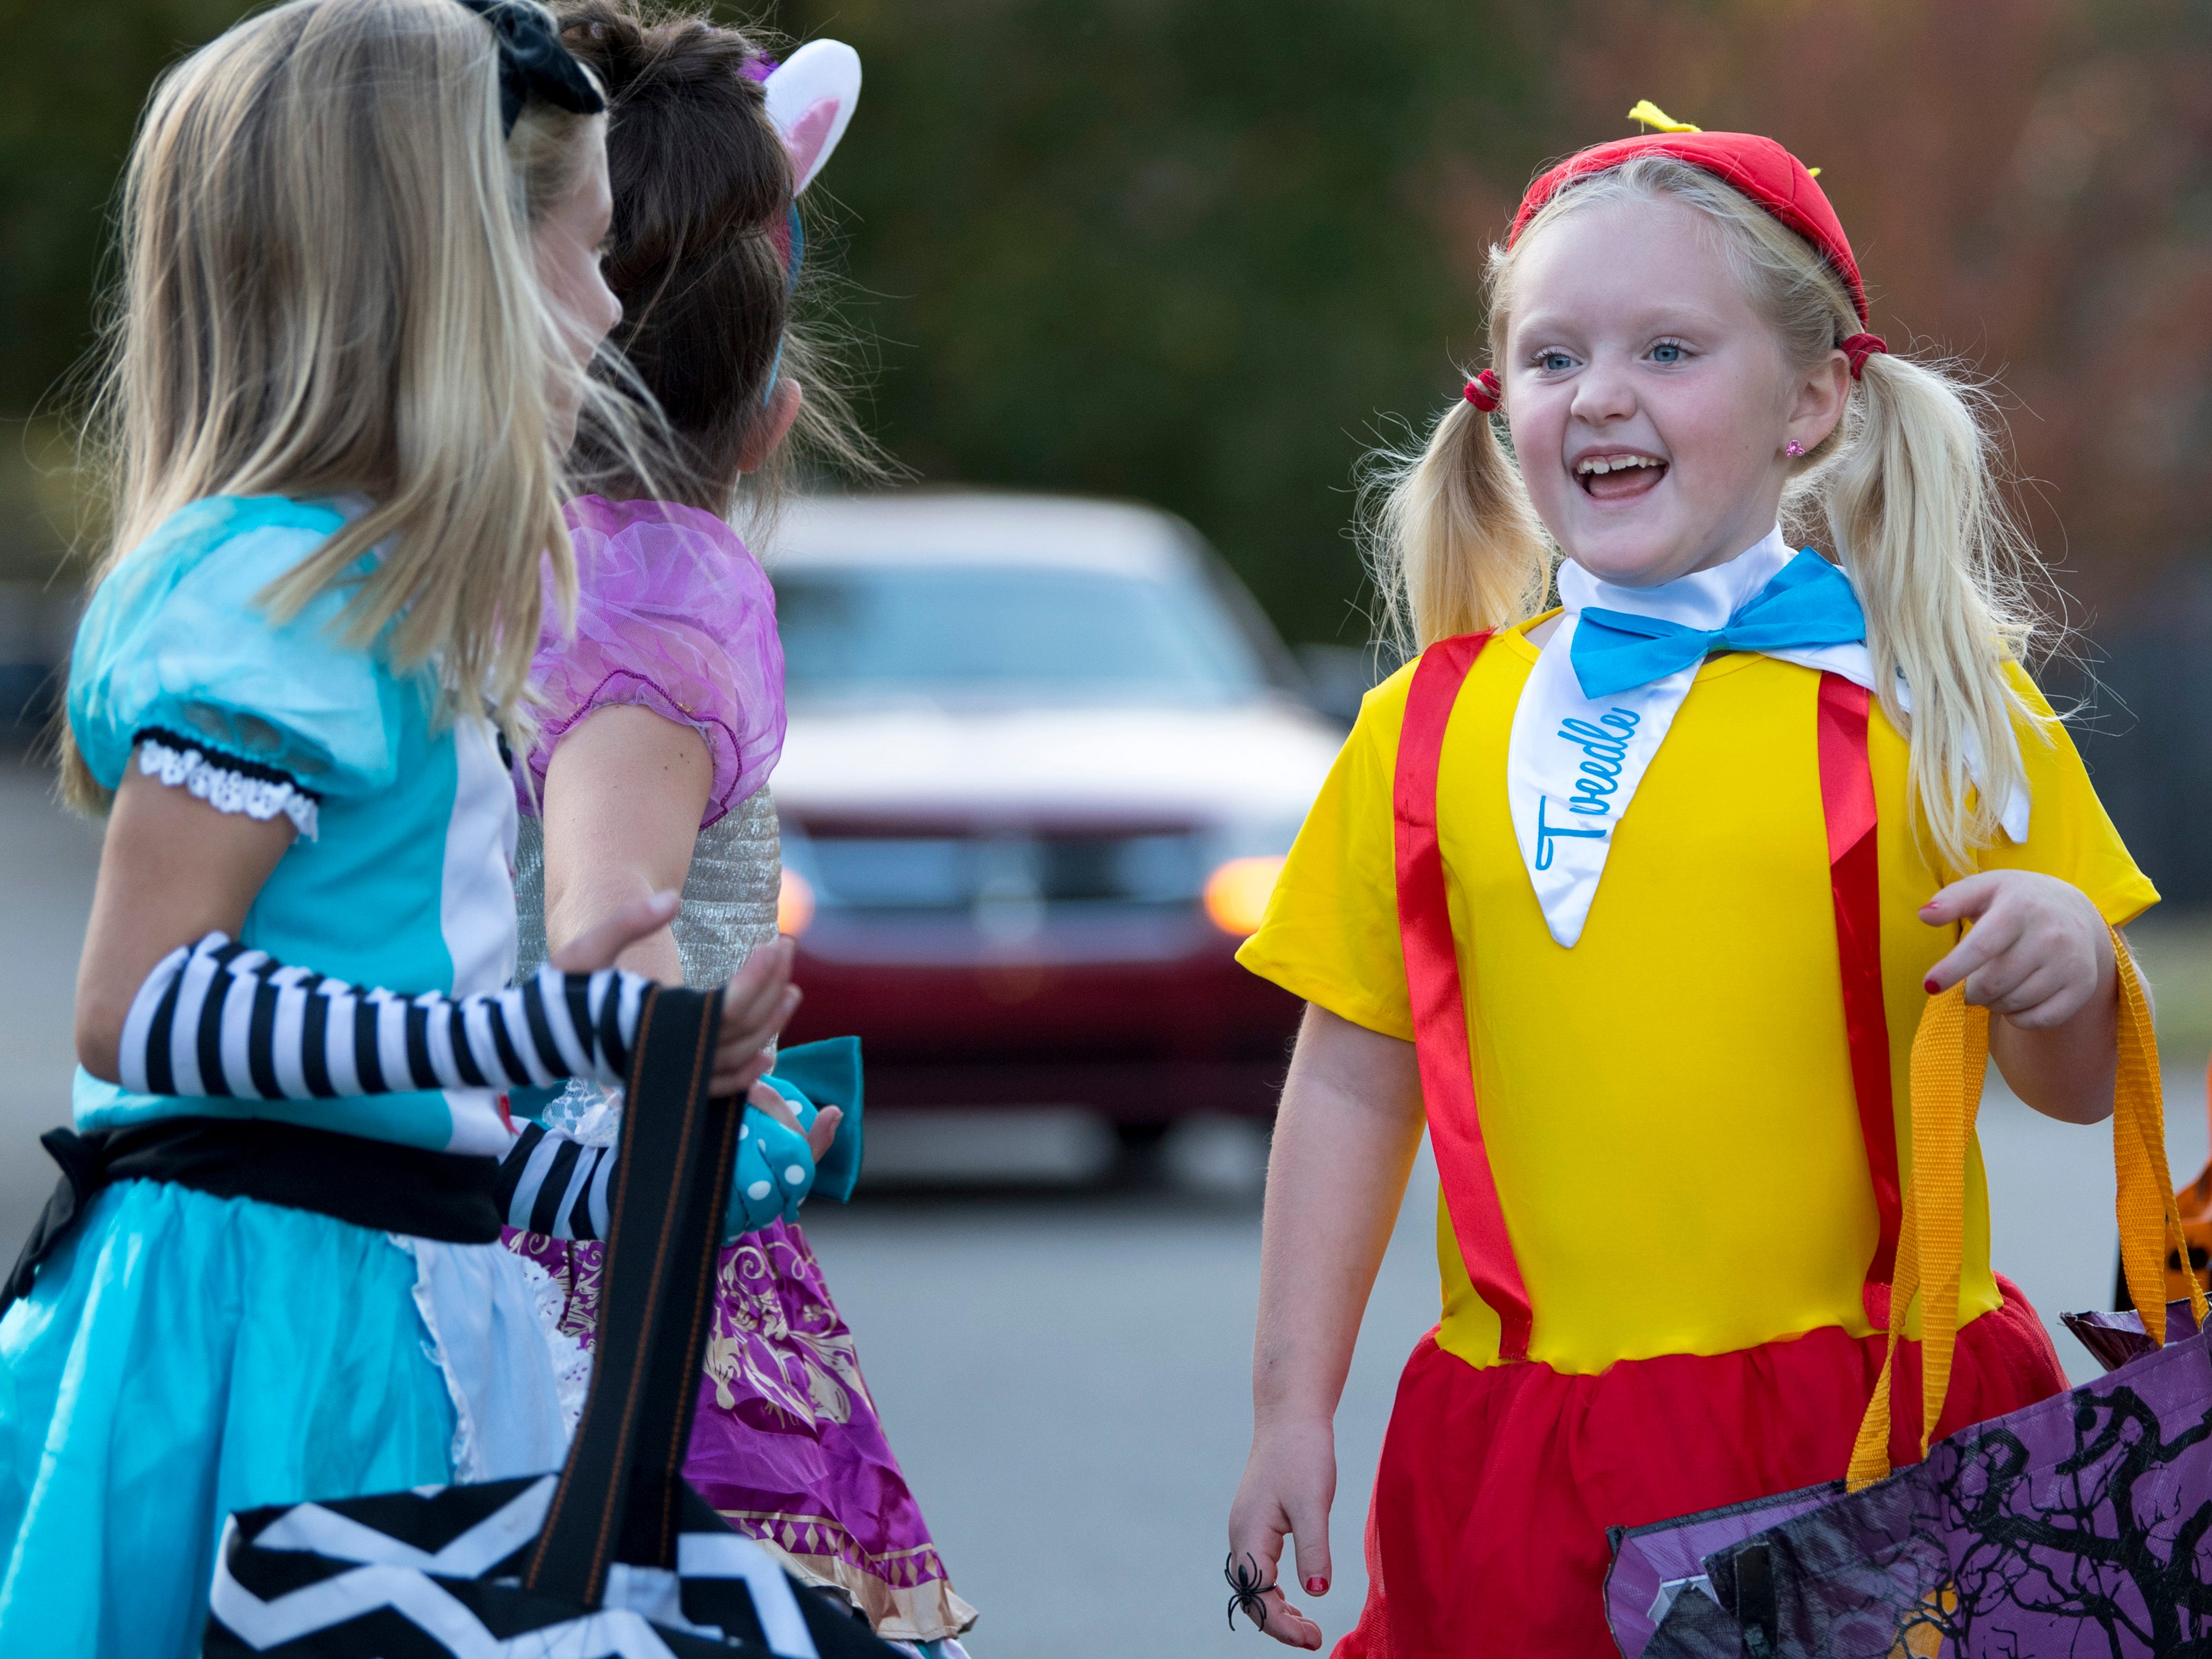 Alice in Wonderland was represented by, from left, Rhaelen Krantz, 8, Presley Kleeman, 7, Sabrynna O'Daniel, 8, and Charley Lynch, 7, (not pictured) in a Newburgh, Ind., neighborhood Tuesday evening.